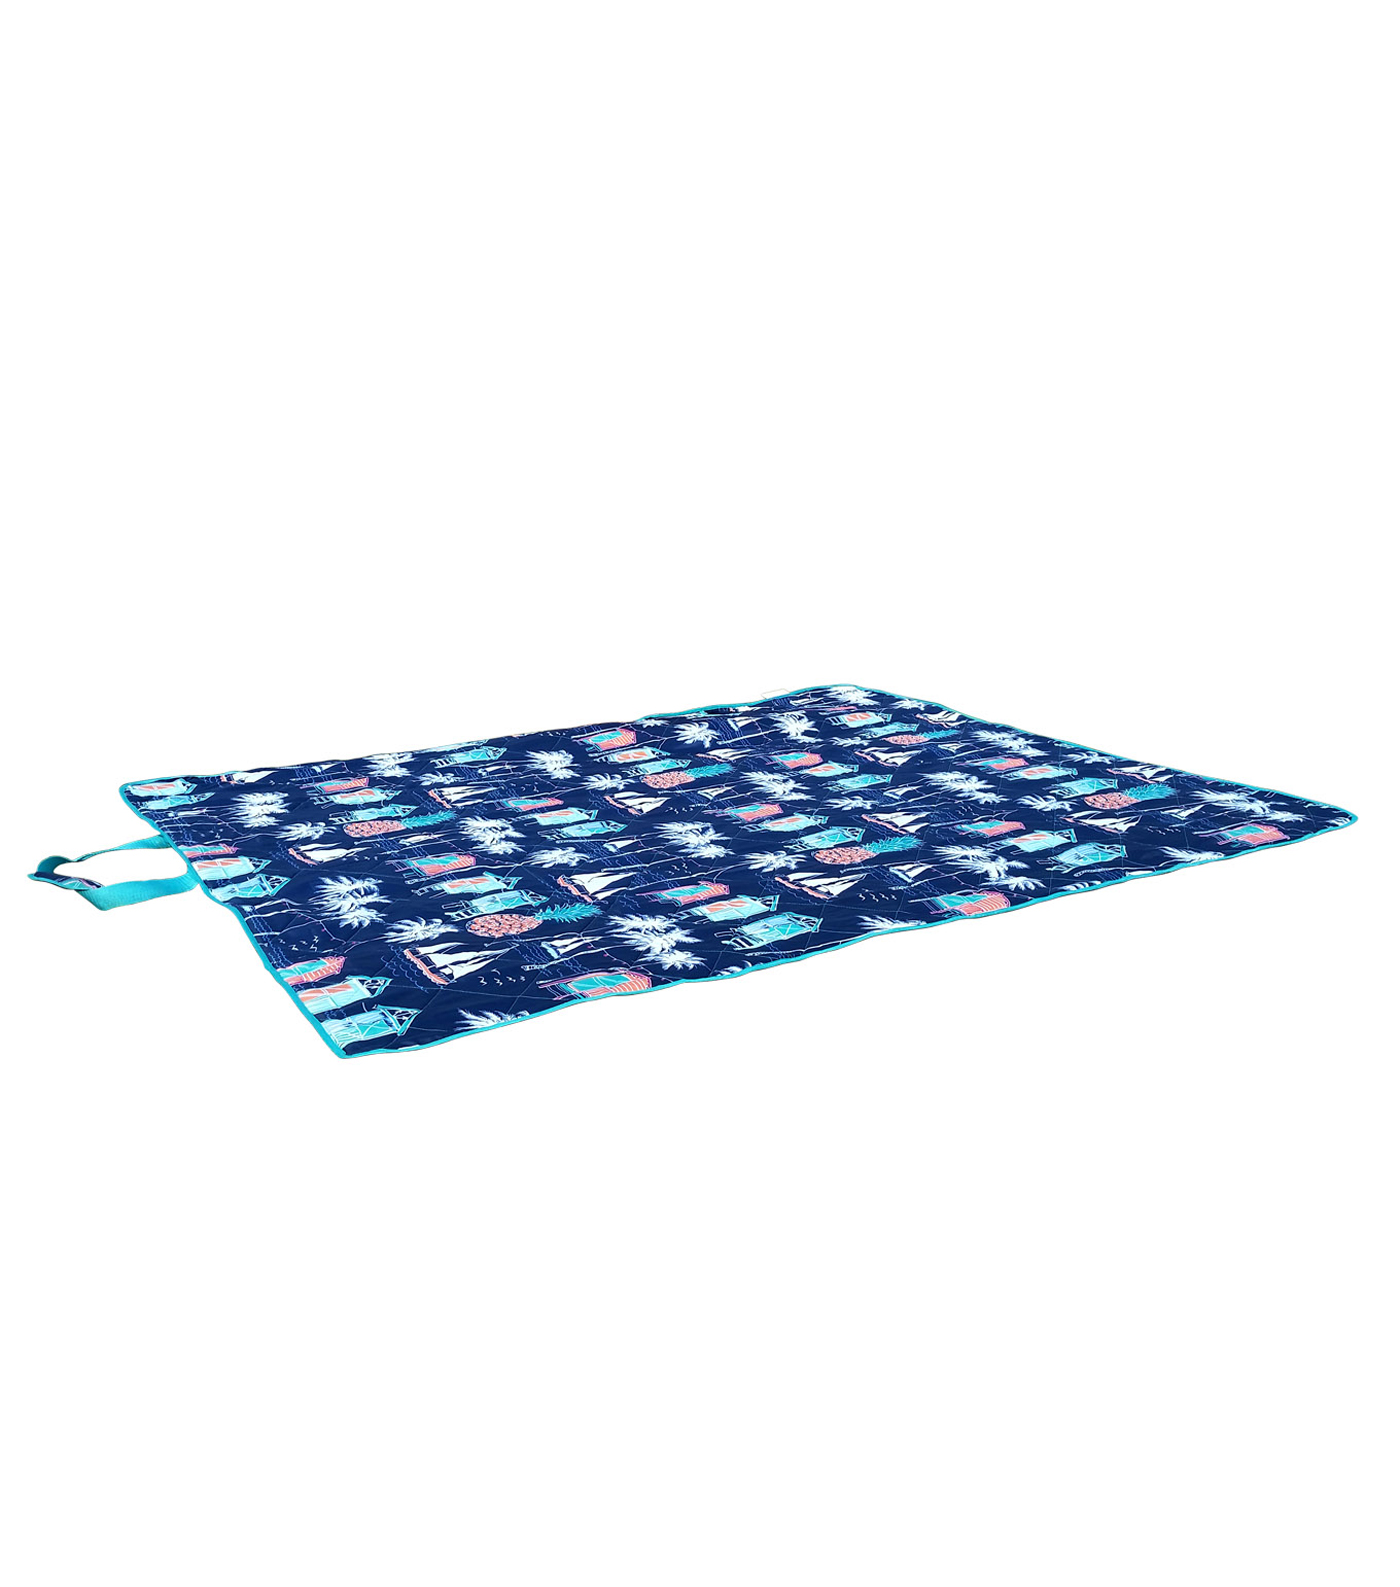 Summer Sol Picnic Blanket-Beach Hut Print